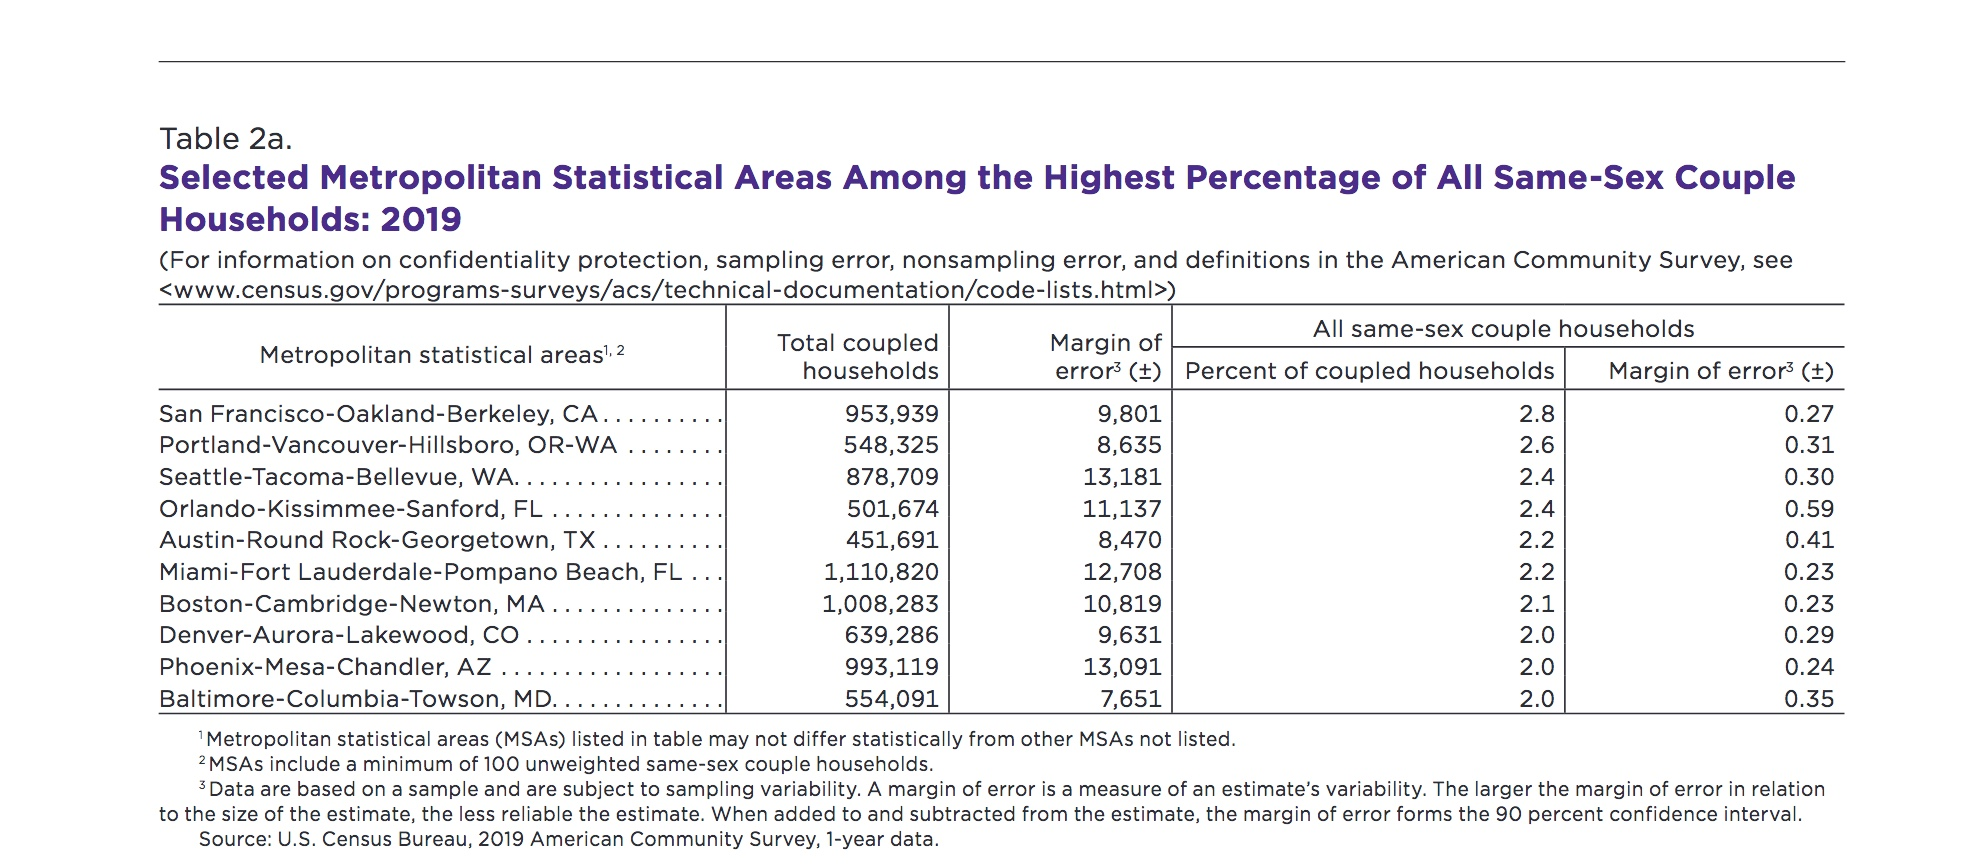 census list of metropolitan areas with highest percentage of same-sex couple households